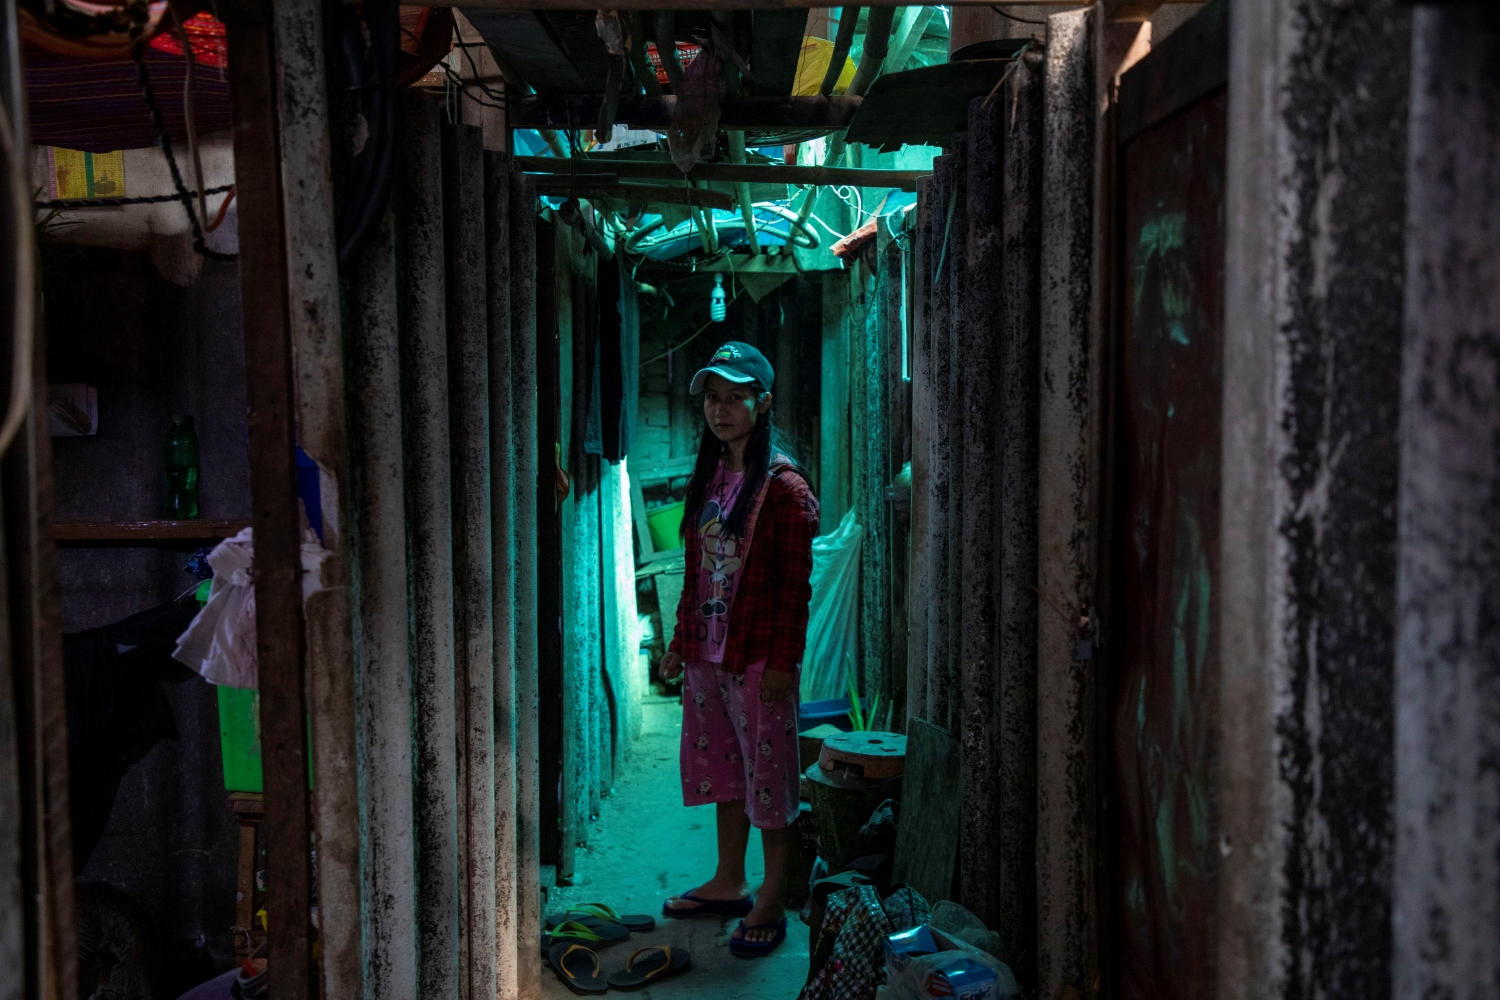 Ma Su Myat Nwe, pictured at her Hlaing Tharyar hostel, says she has not been able to find new work since being laid off by the Fu Tet Li garment factory in February. (Frontier)